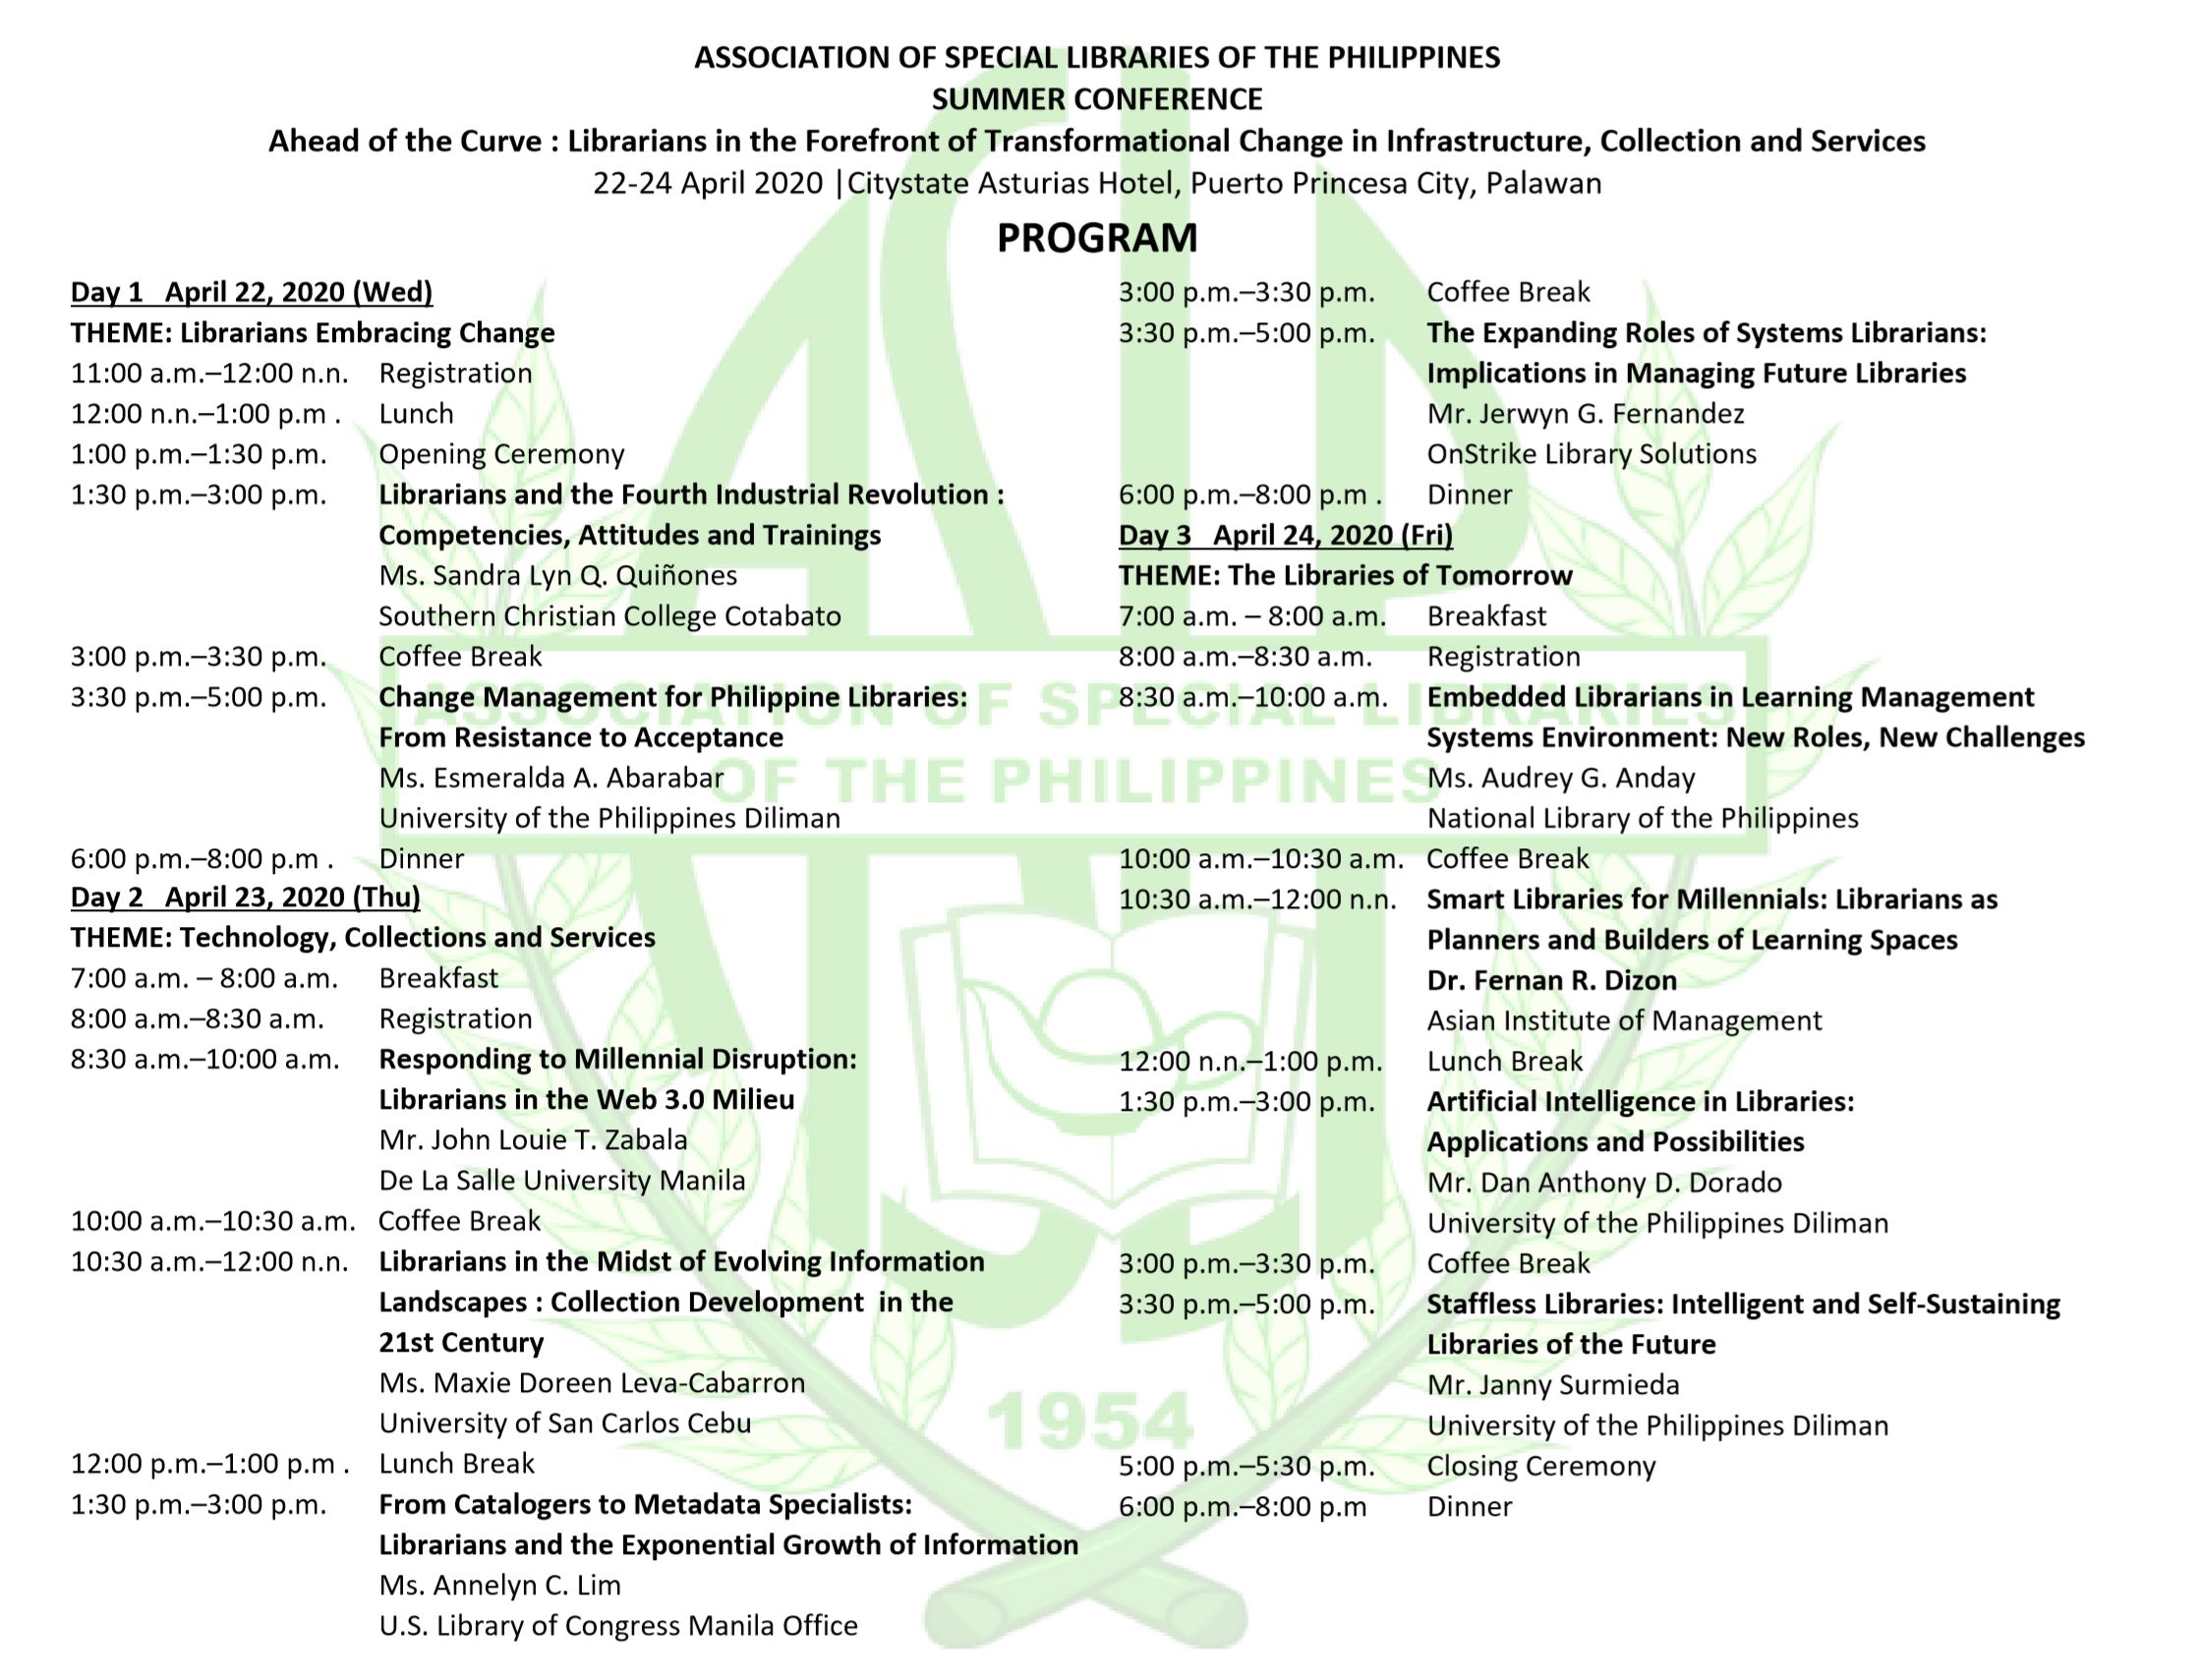 2020 ASLP Summer Conference Puerto Princesa Program